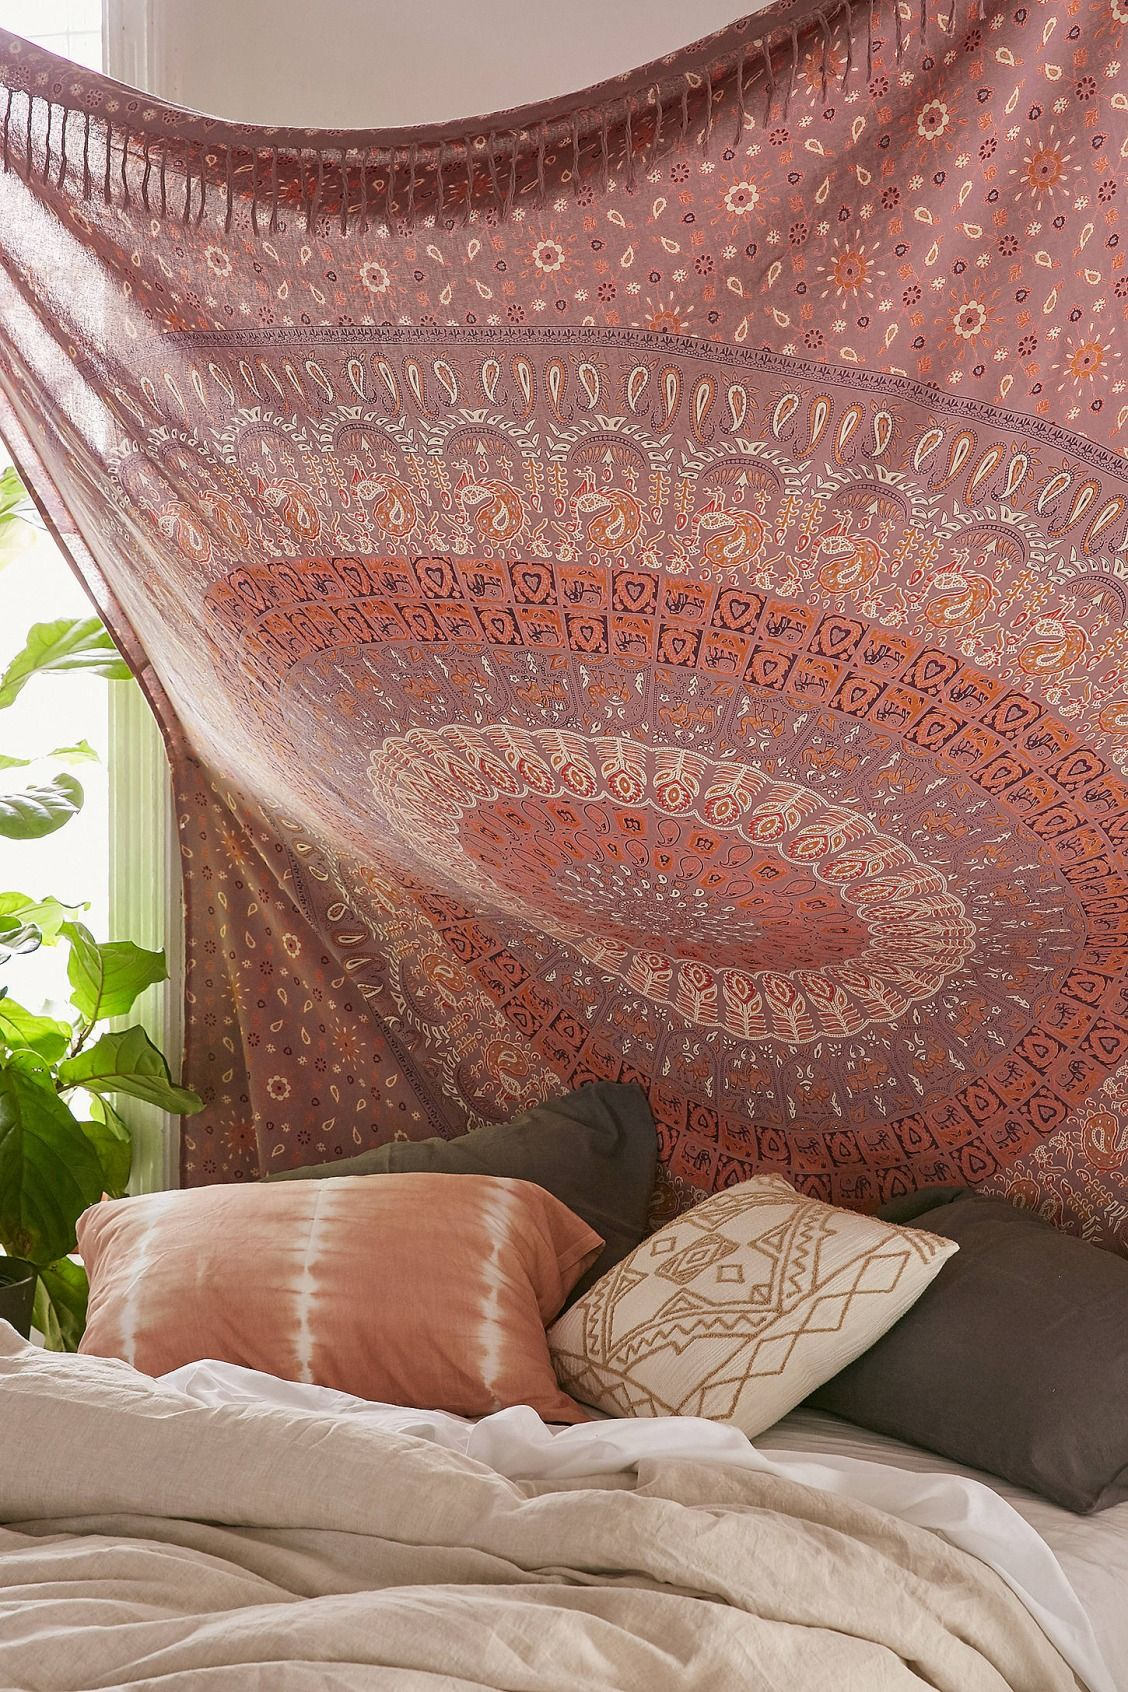 Urban outfitters bedroom tapestry - Maina Medallion Tapestry Urban Outfitters Home Gifts Bedding Throws Blankets